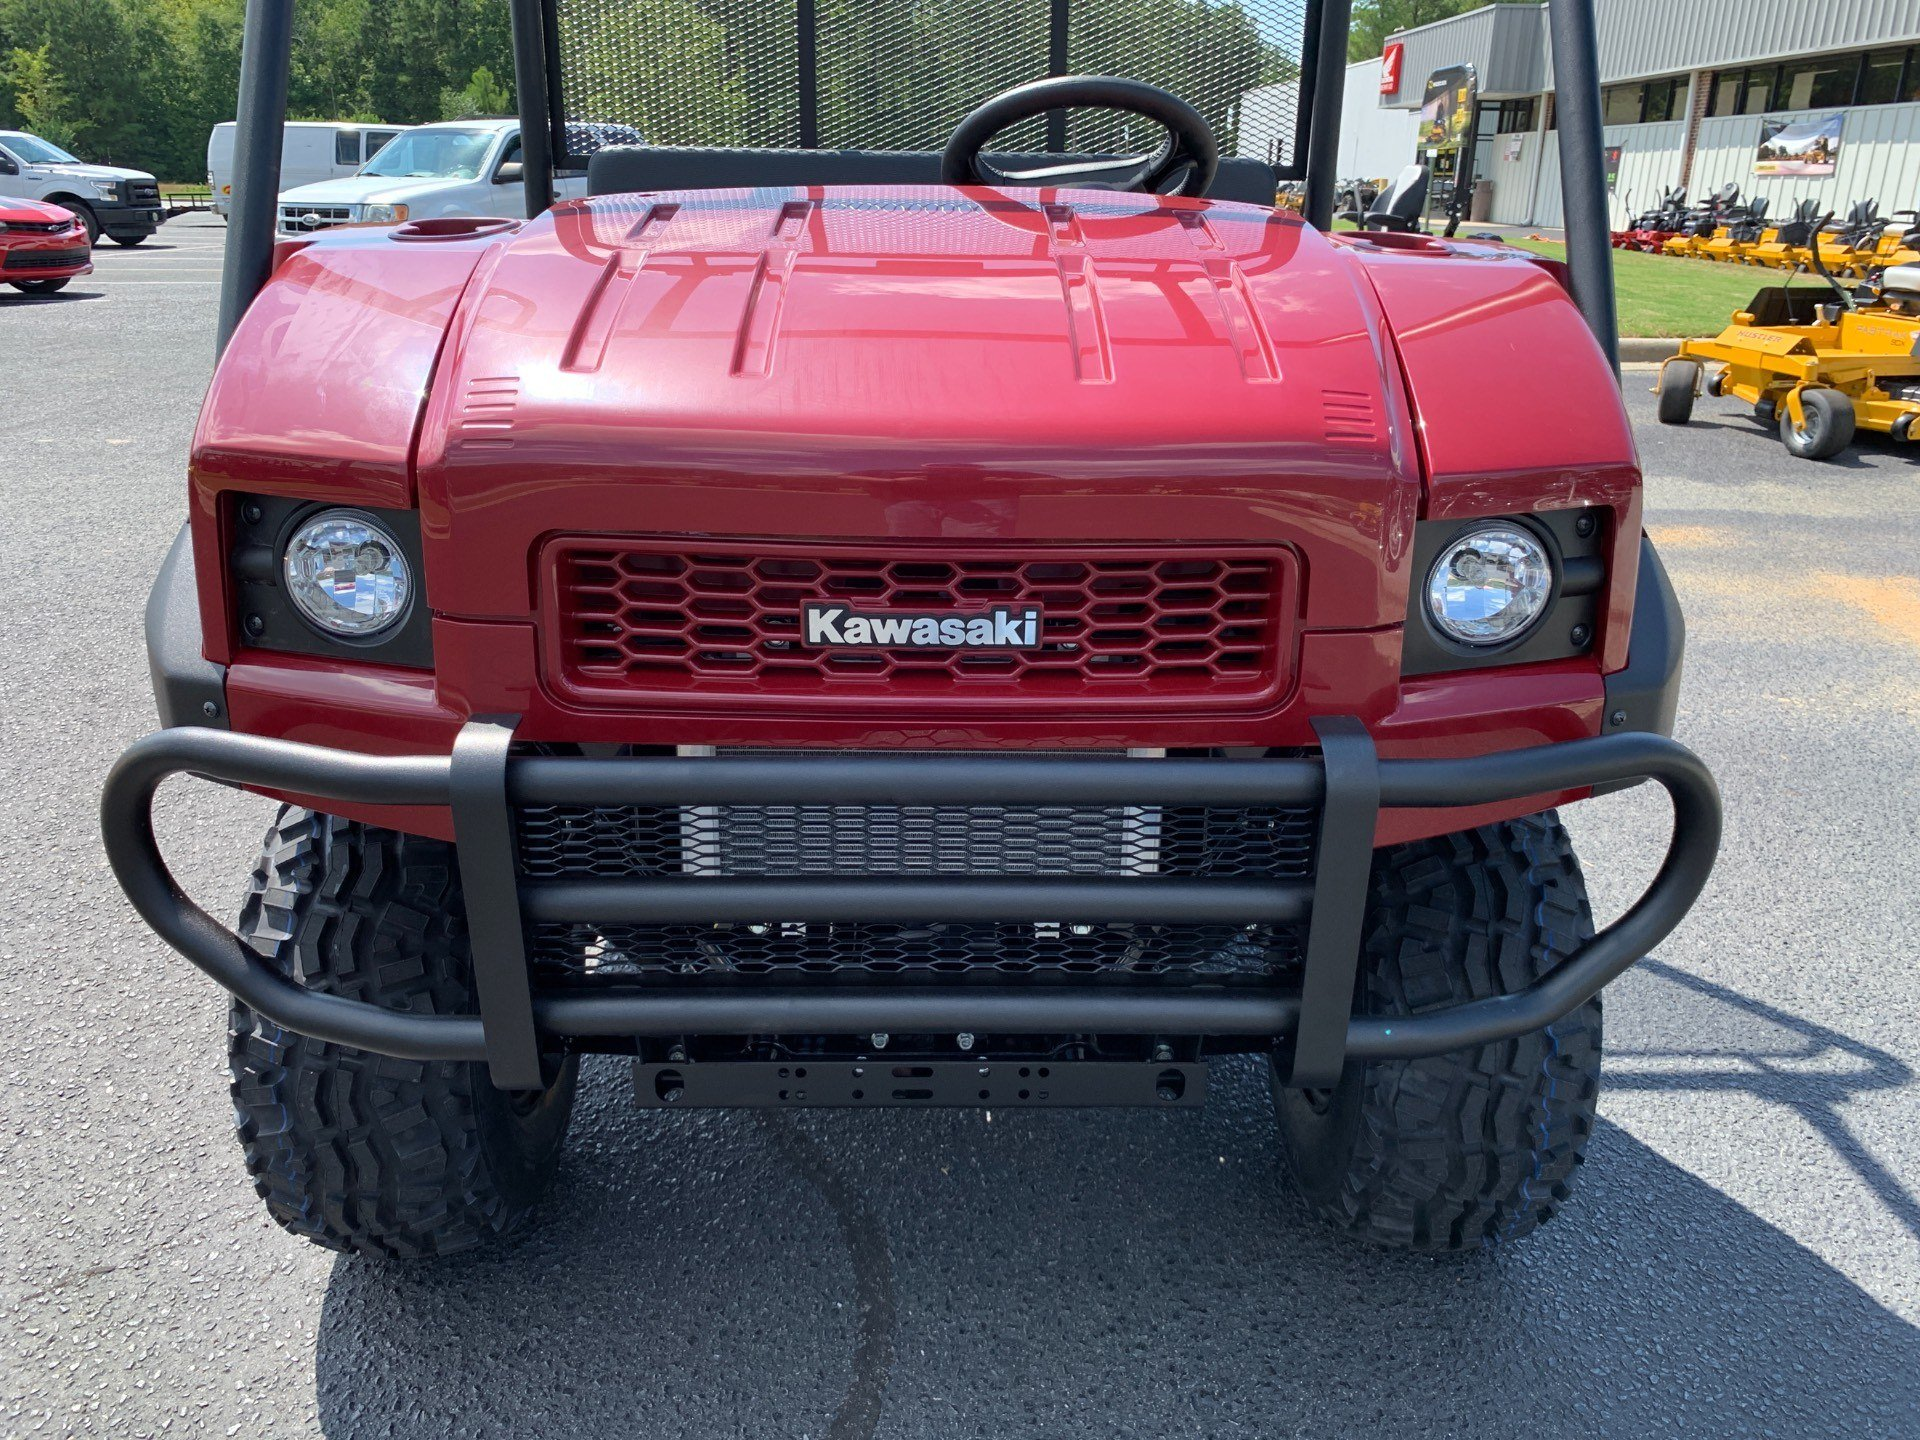 2020 Kawasaki Mule 4010 4x4 in Greenville, North Carolina - Photo 13